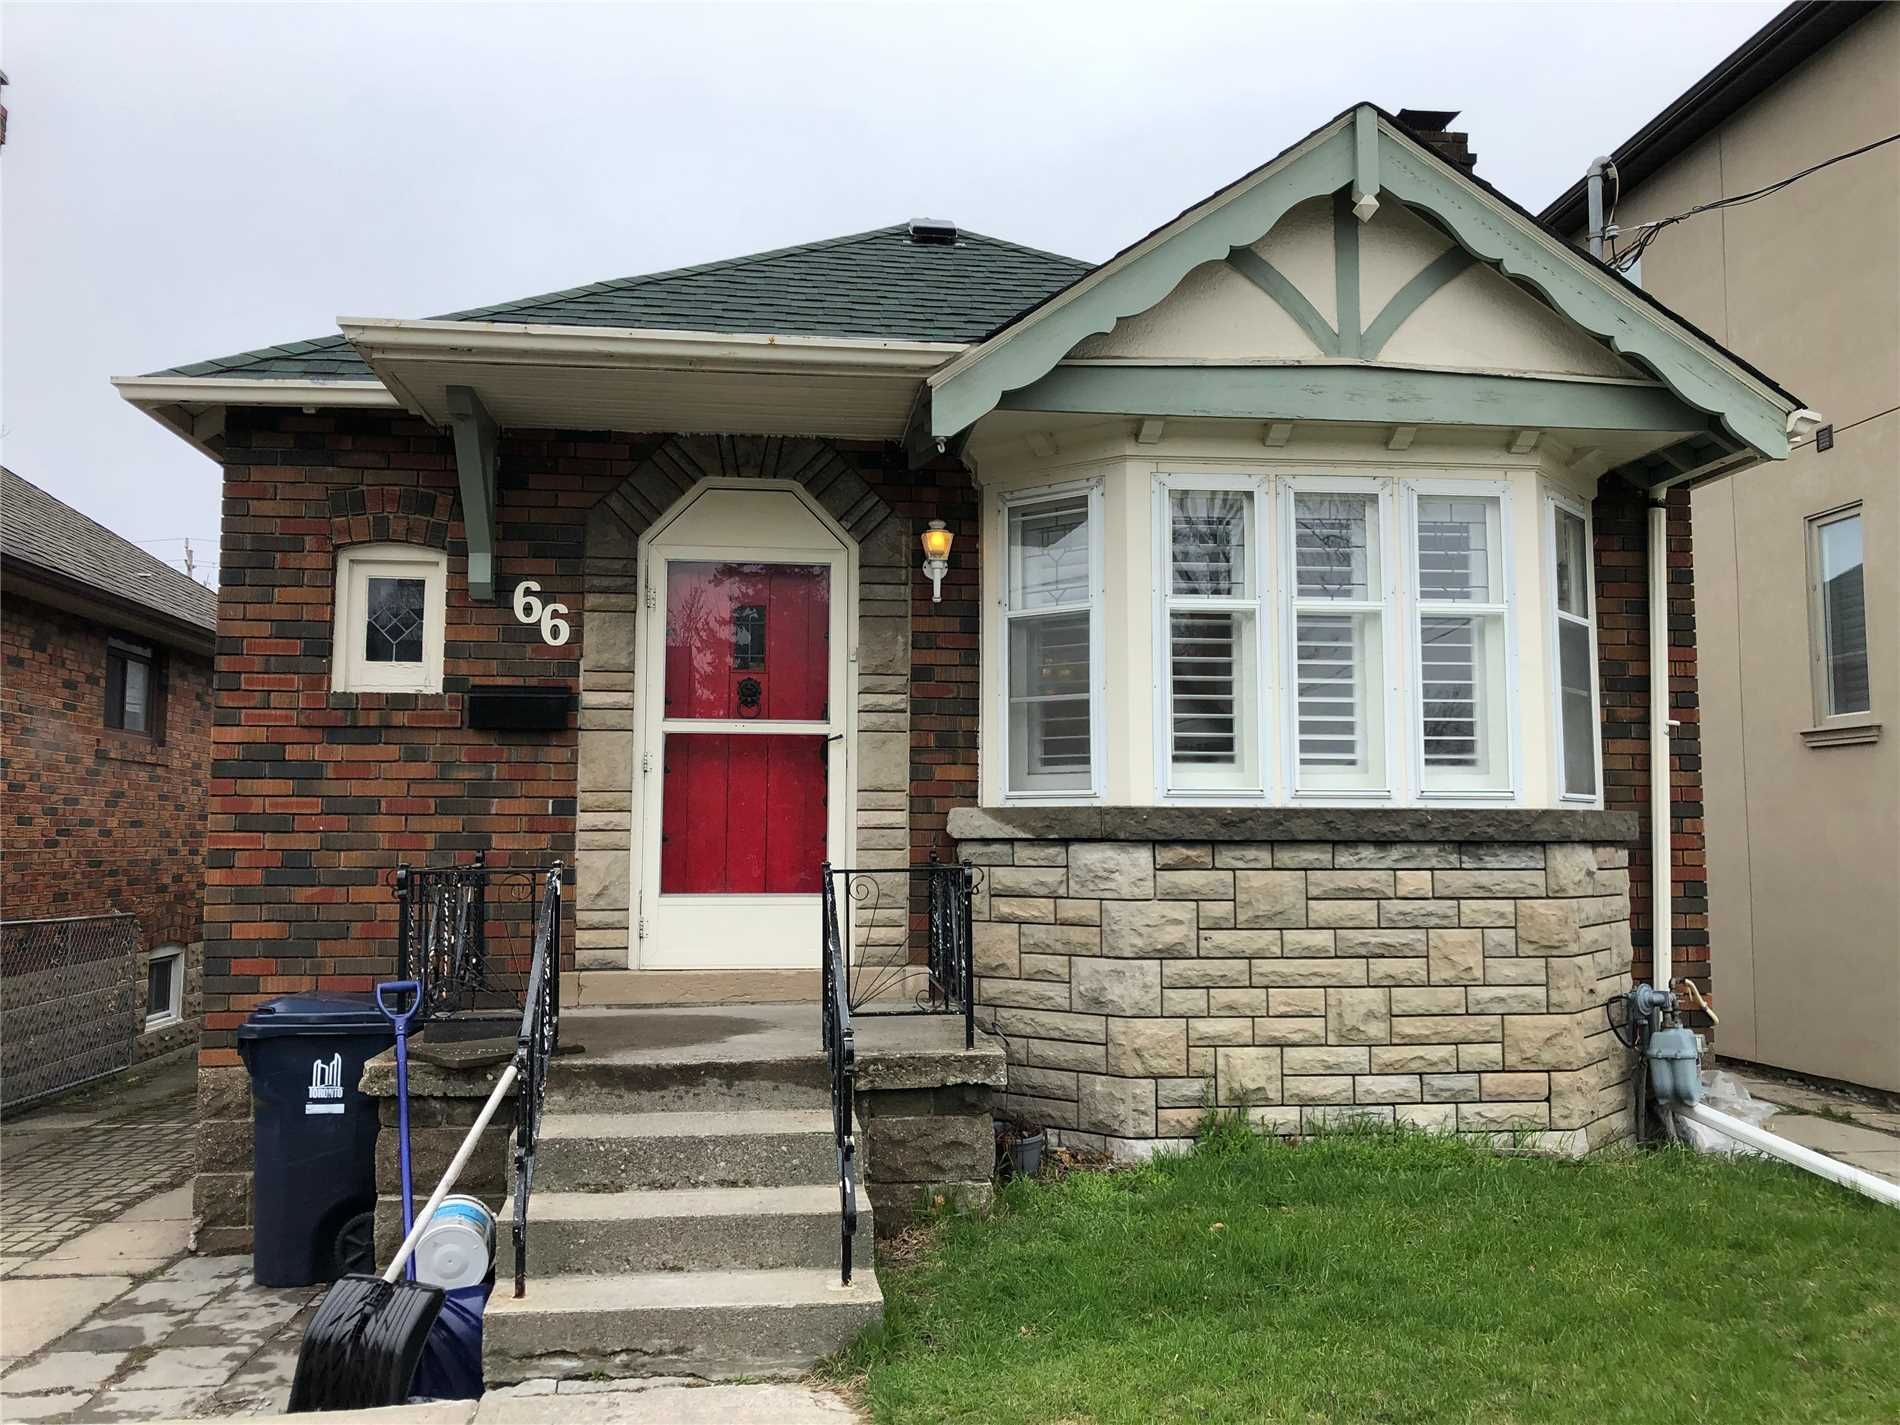 Fabulous Basement Apartment Close To All Amenties! Laminate Floors, Private Entrance, New Kitchen & On-Site Laundry!  Great Location ~ Walking Distance To All, Ttc Transit, Parks And Much More!